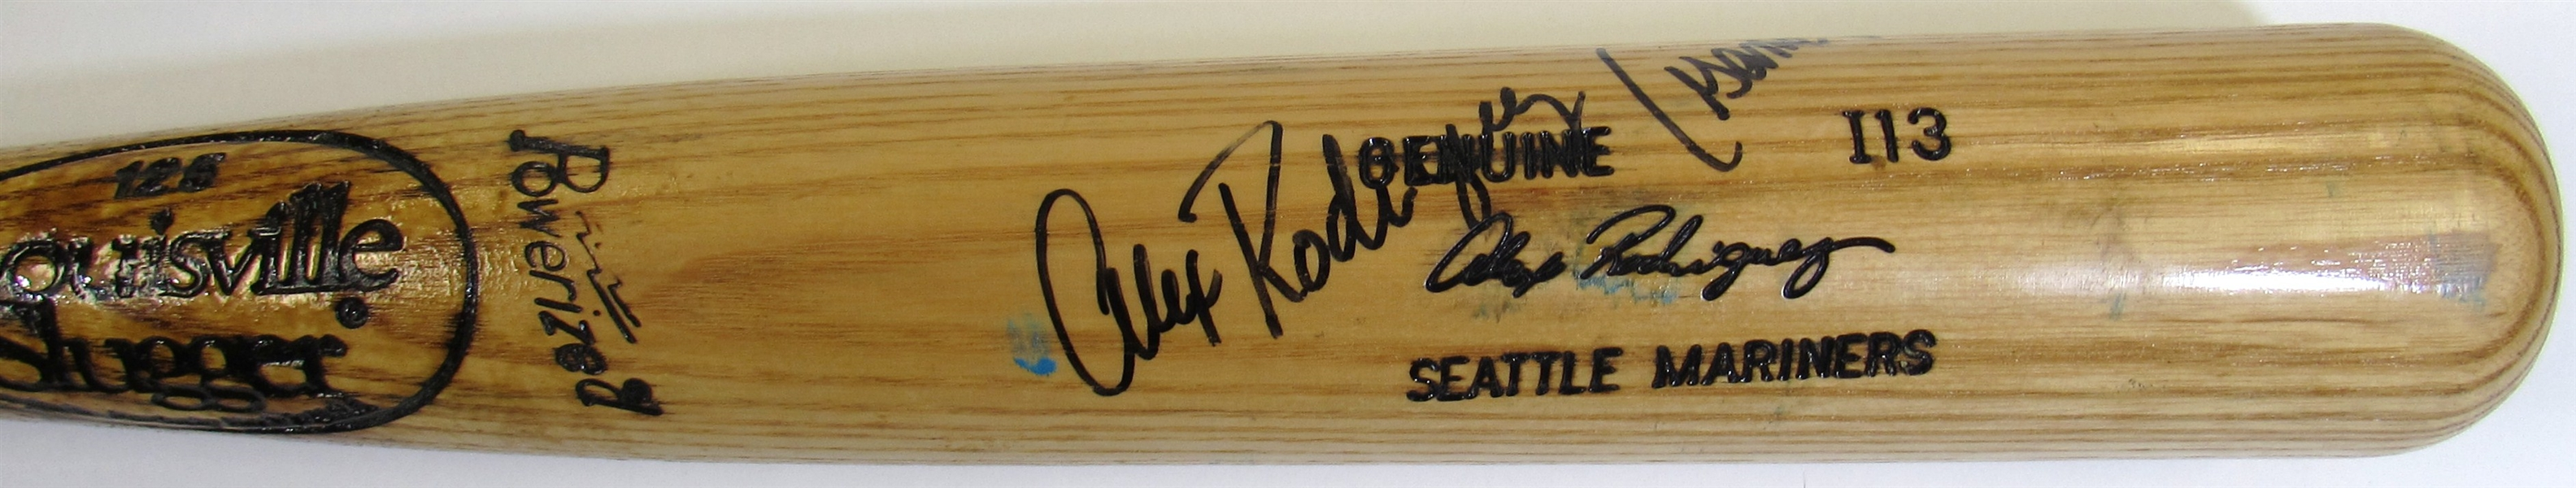 1996 Alex Rodriguez Game Used Bat Signed